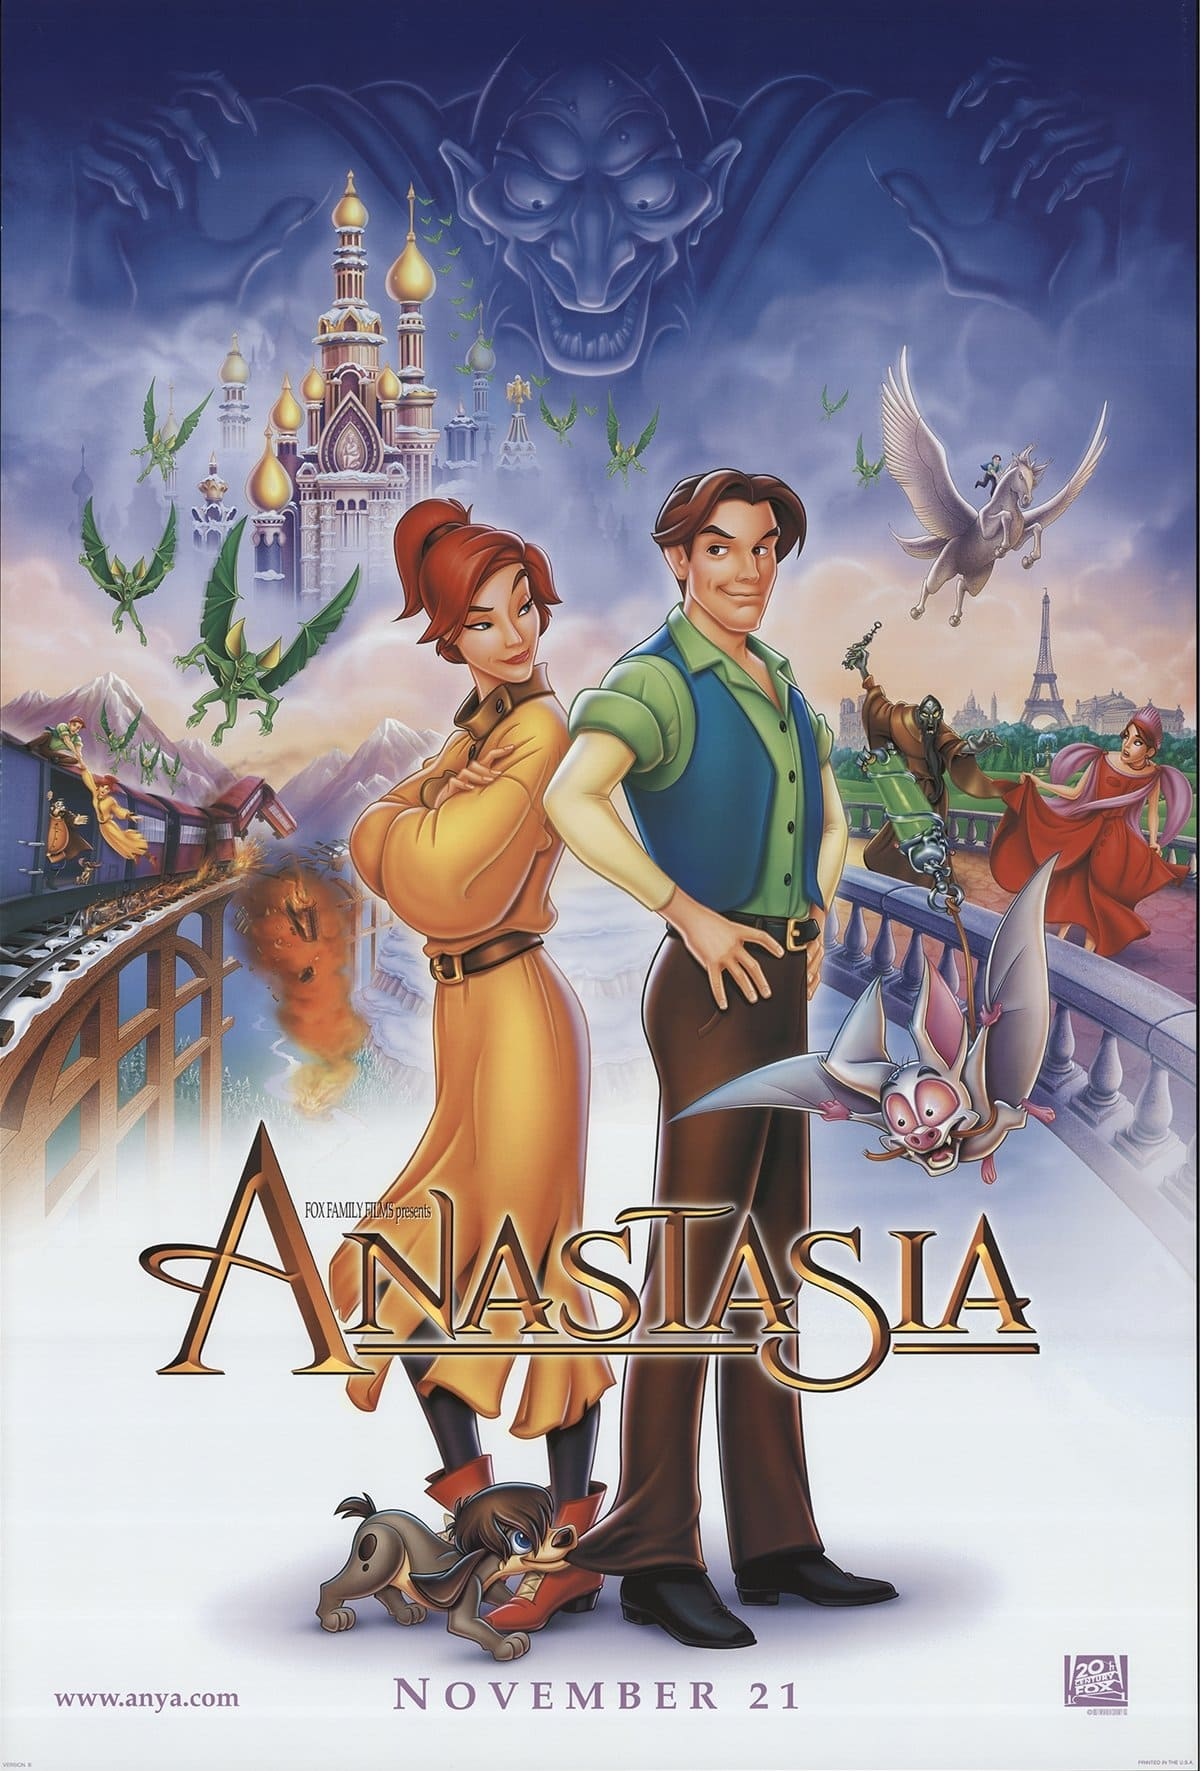 Kirsten Dunst provided the speaking voice for young Anastasia in the 1997 American animated musical drama film Anastasia